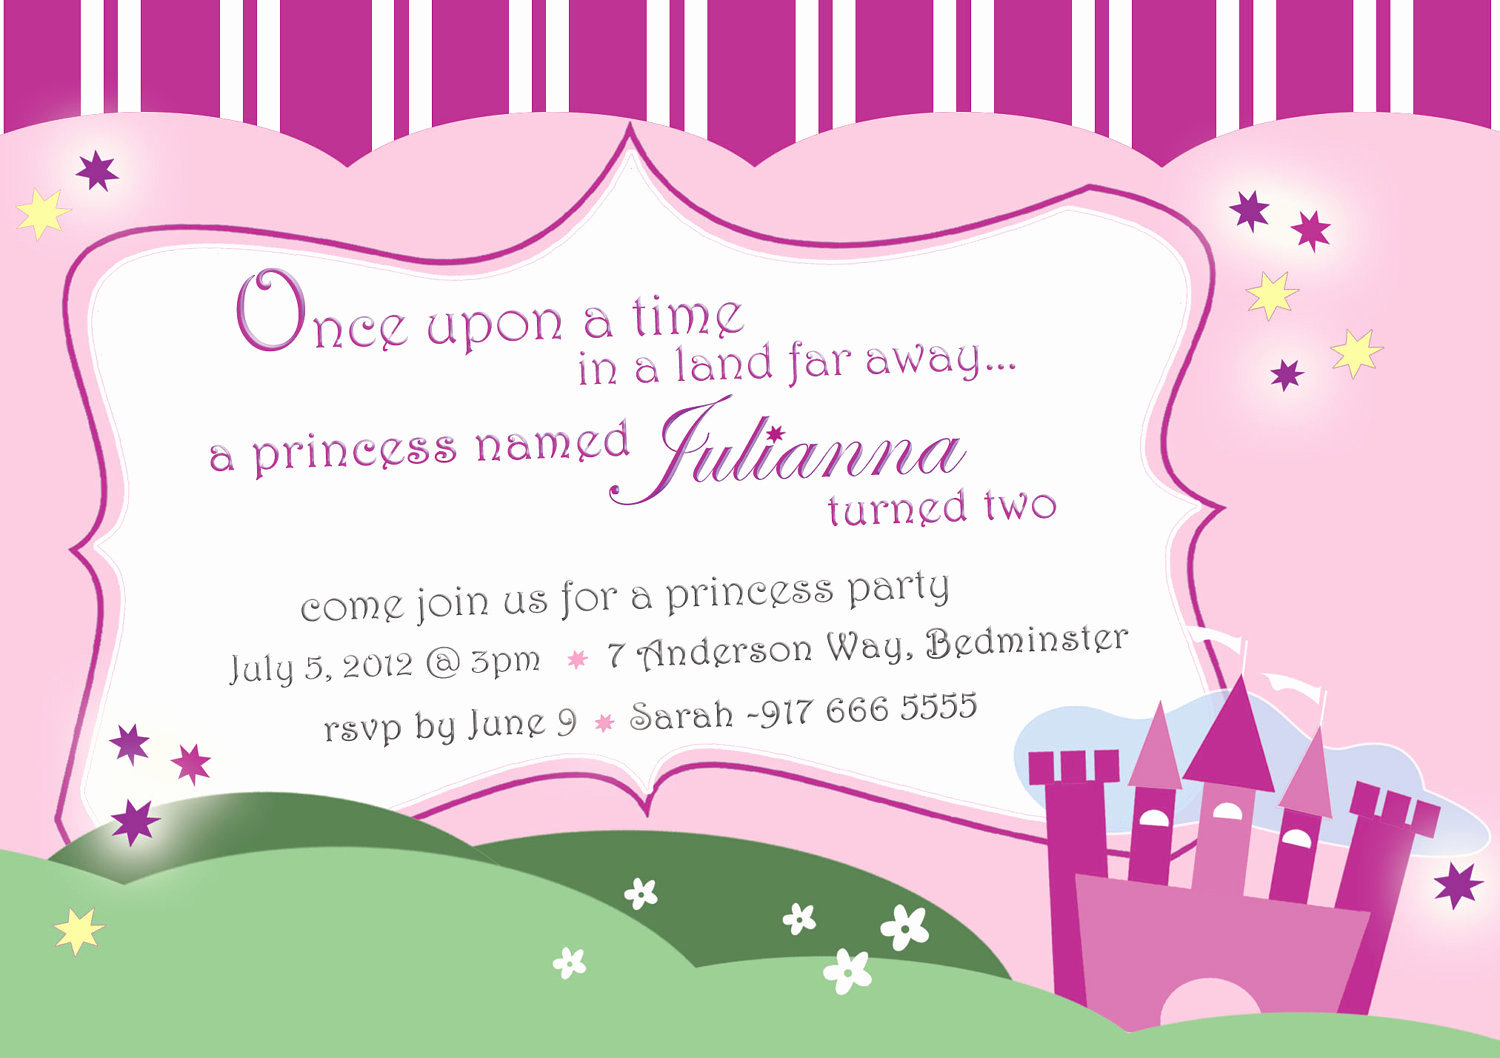 Princess Party Invitation Wording Elegant Princess Invitation Princess Birthday Castle Princess